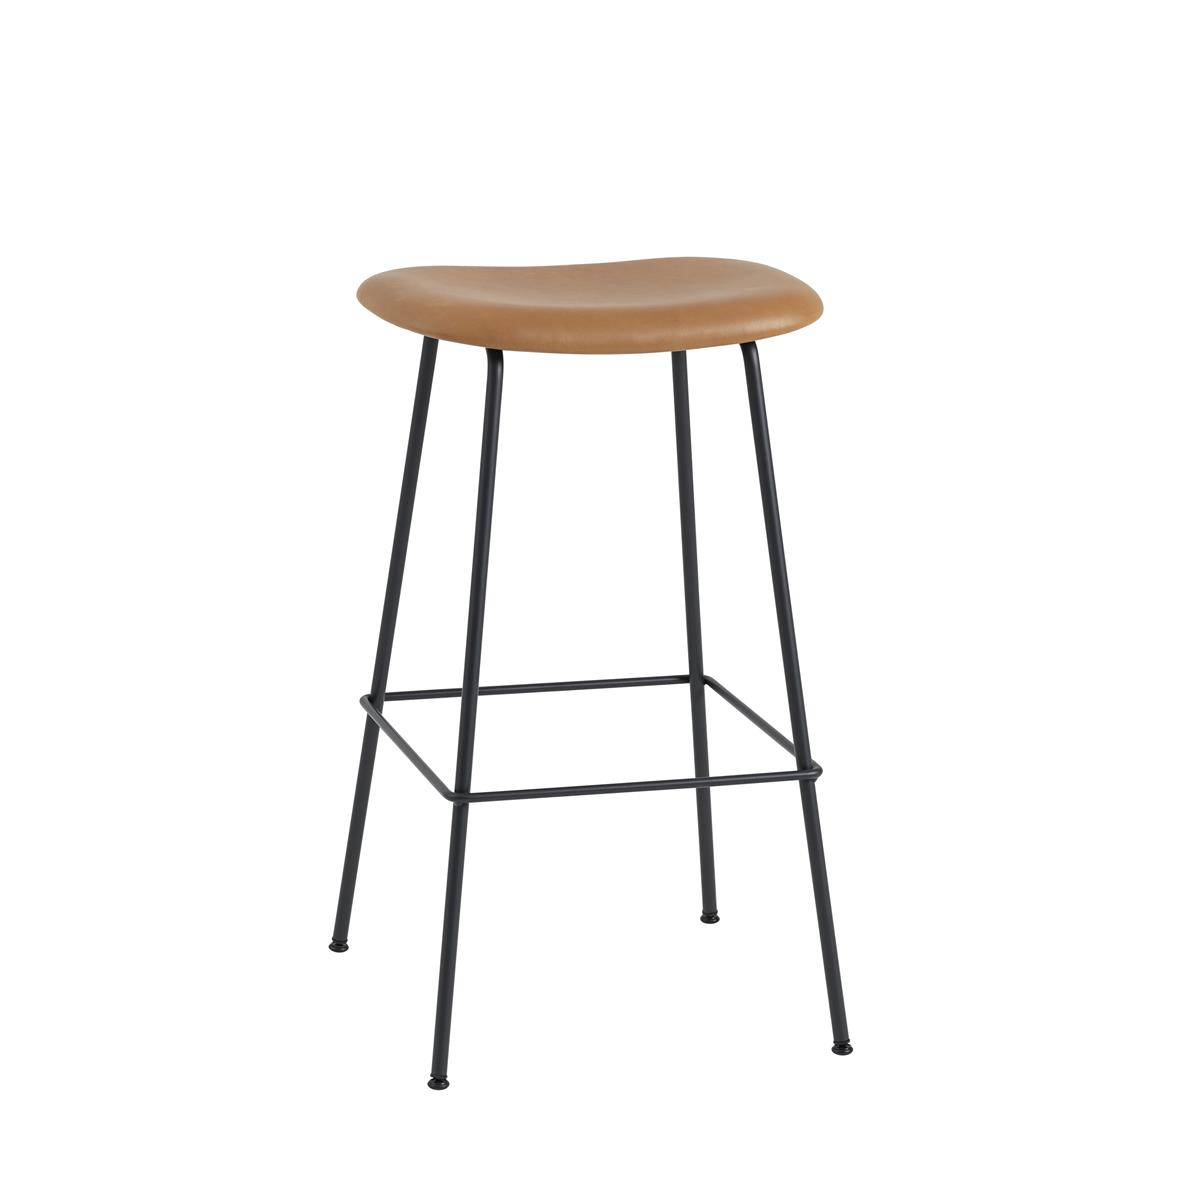 Fiber Bar Stool Tube Base H75 - Cognac Silk Leather & Black